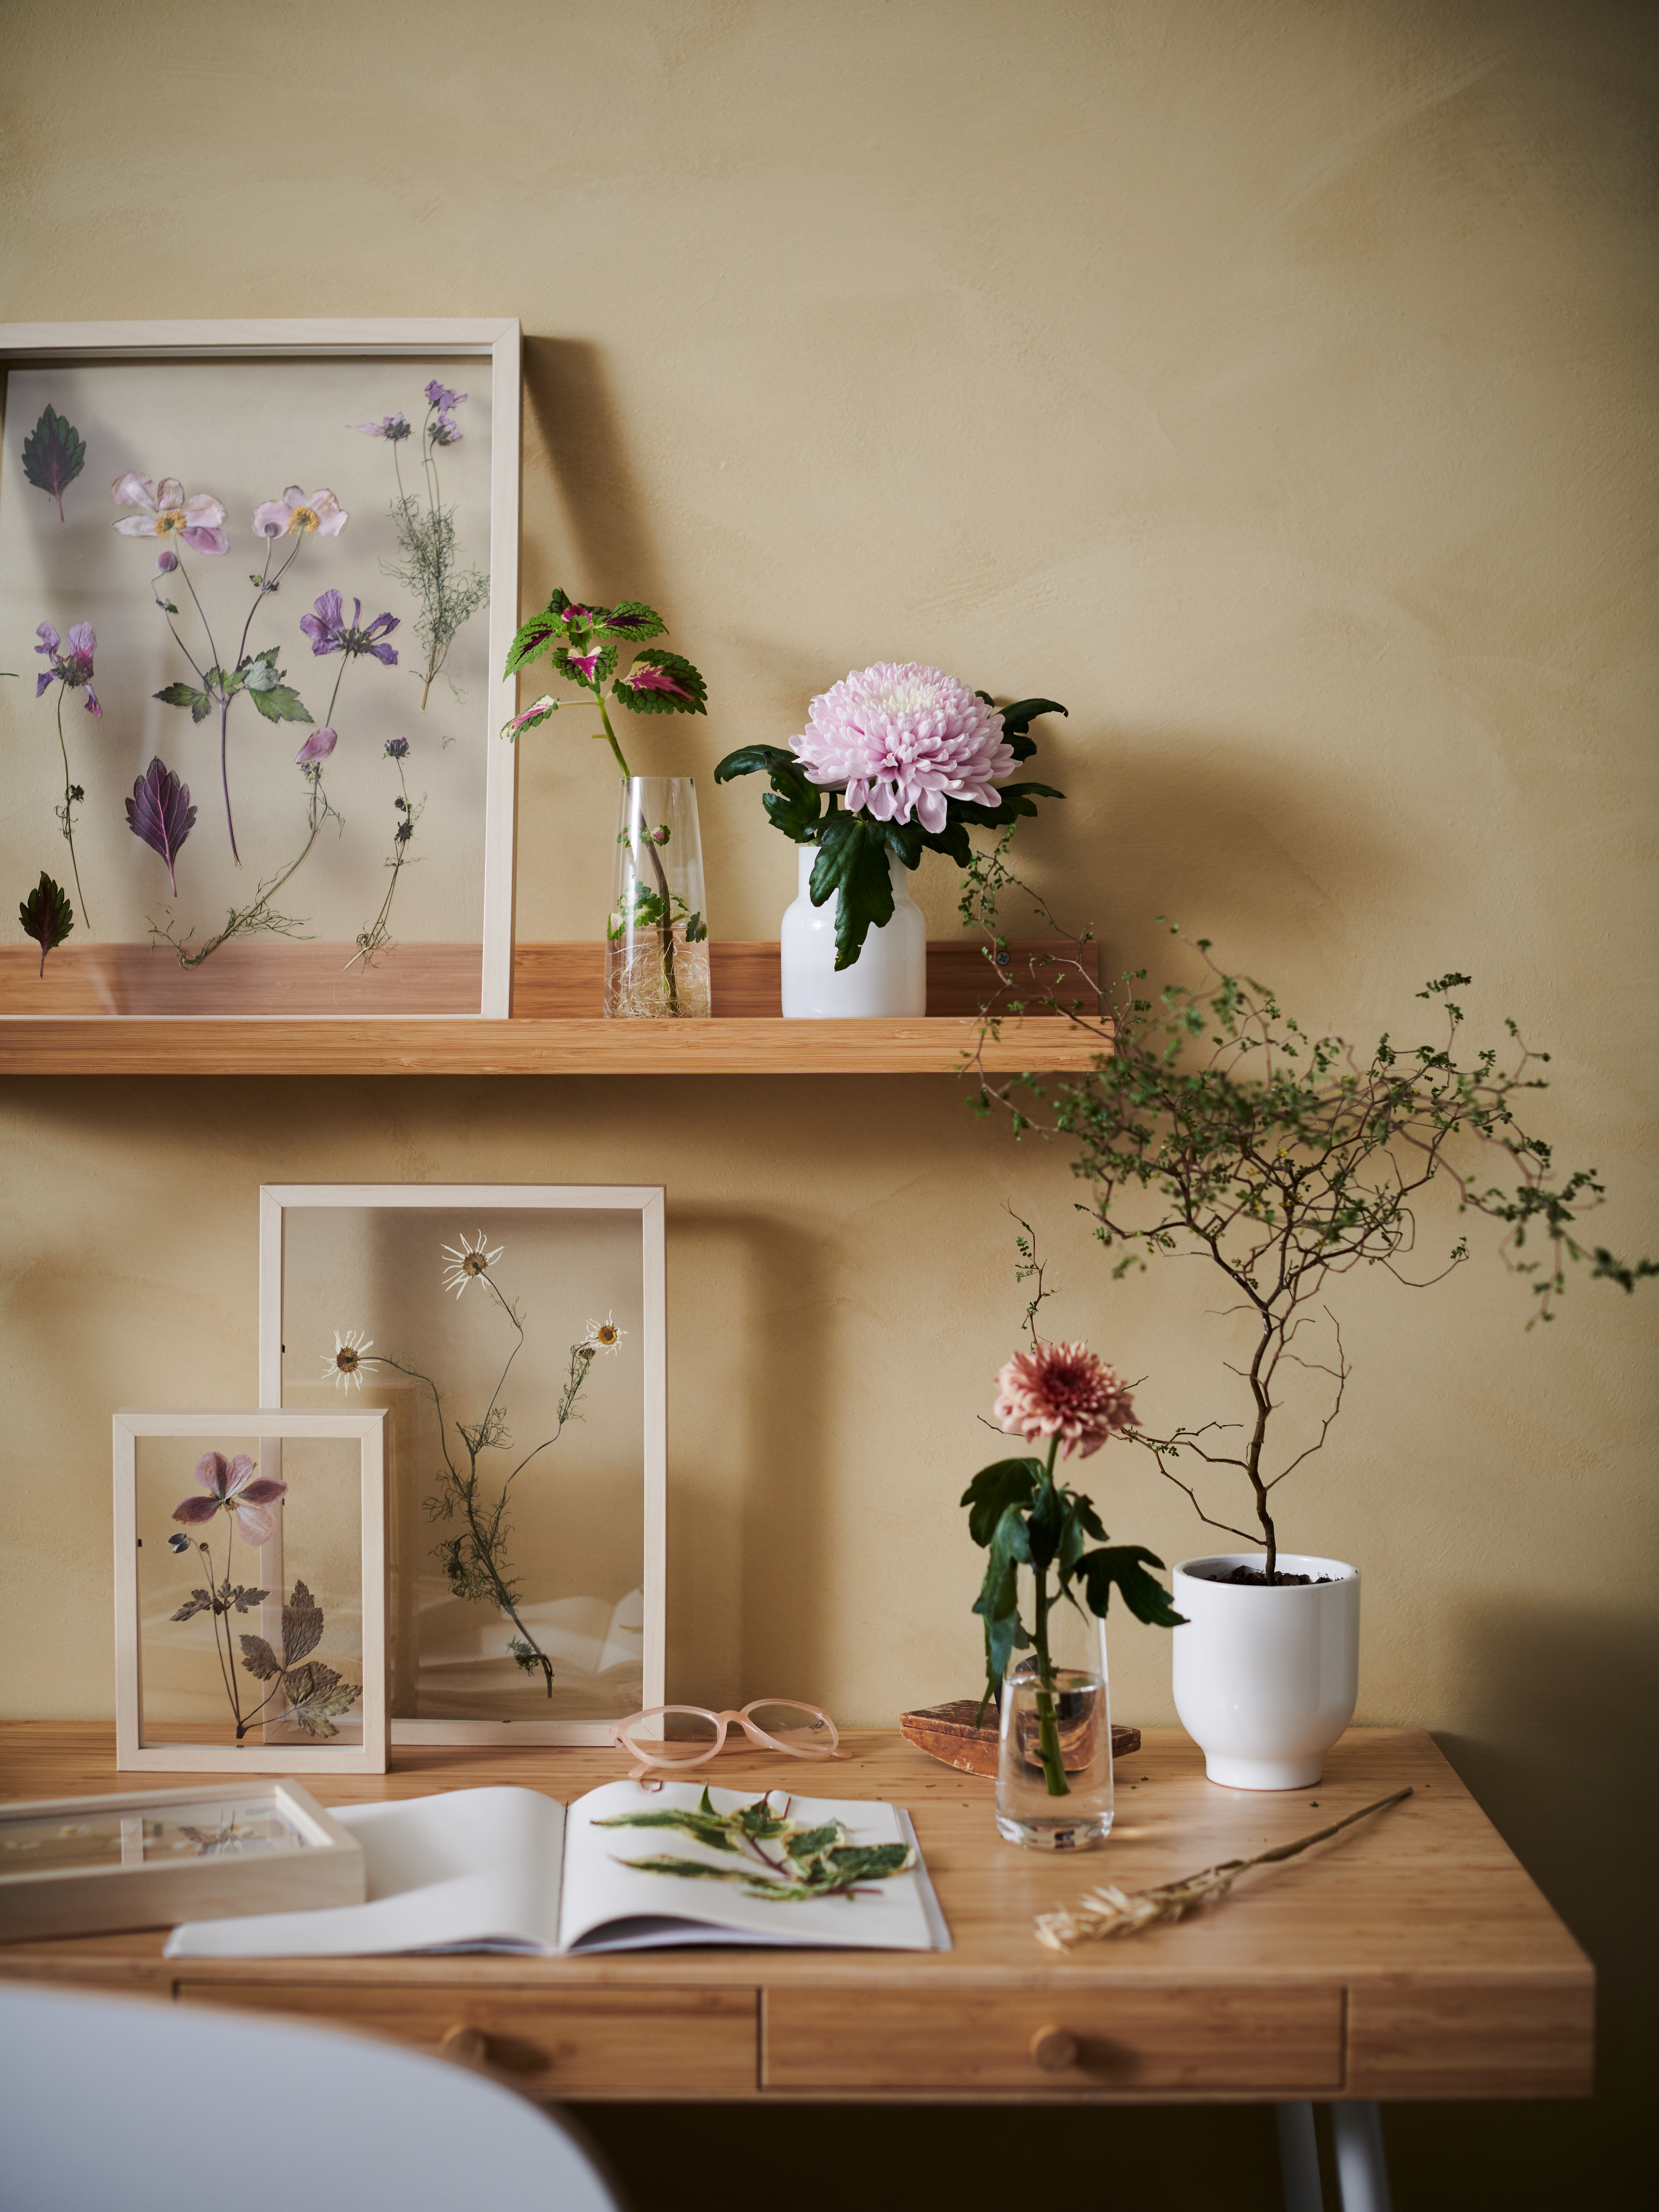 A potted plant and flowers in vases and frames fill a desk and a MÅLERÅS bamboo picture ledge on the wall above.